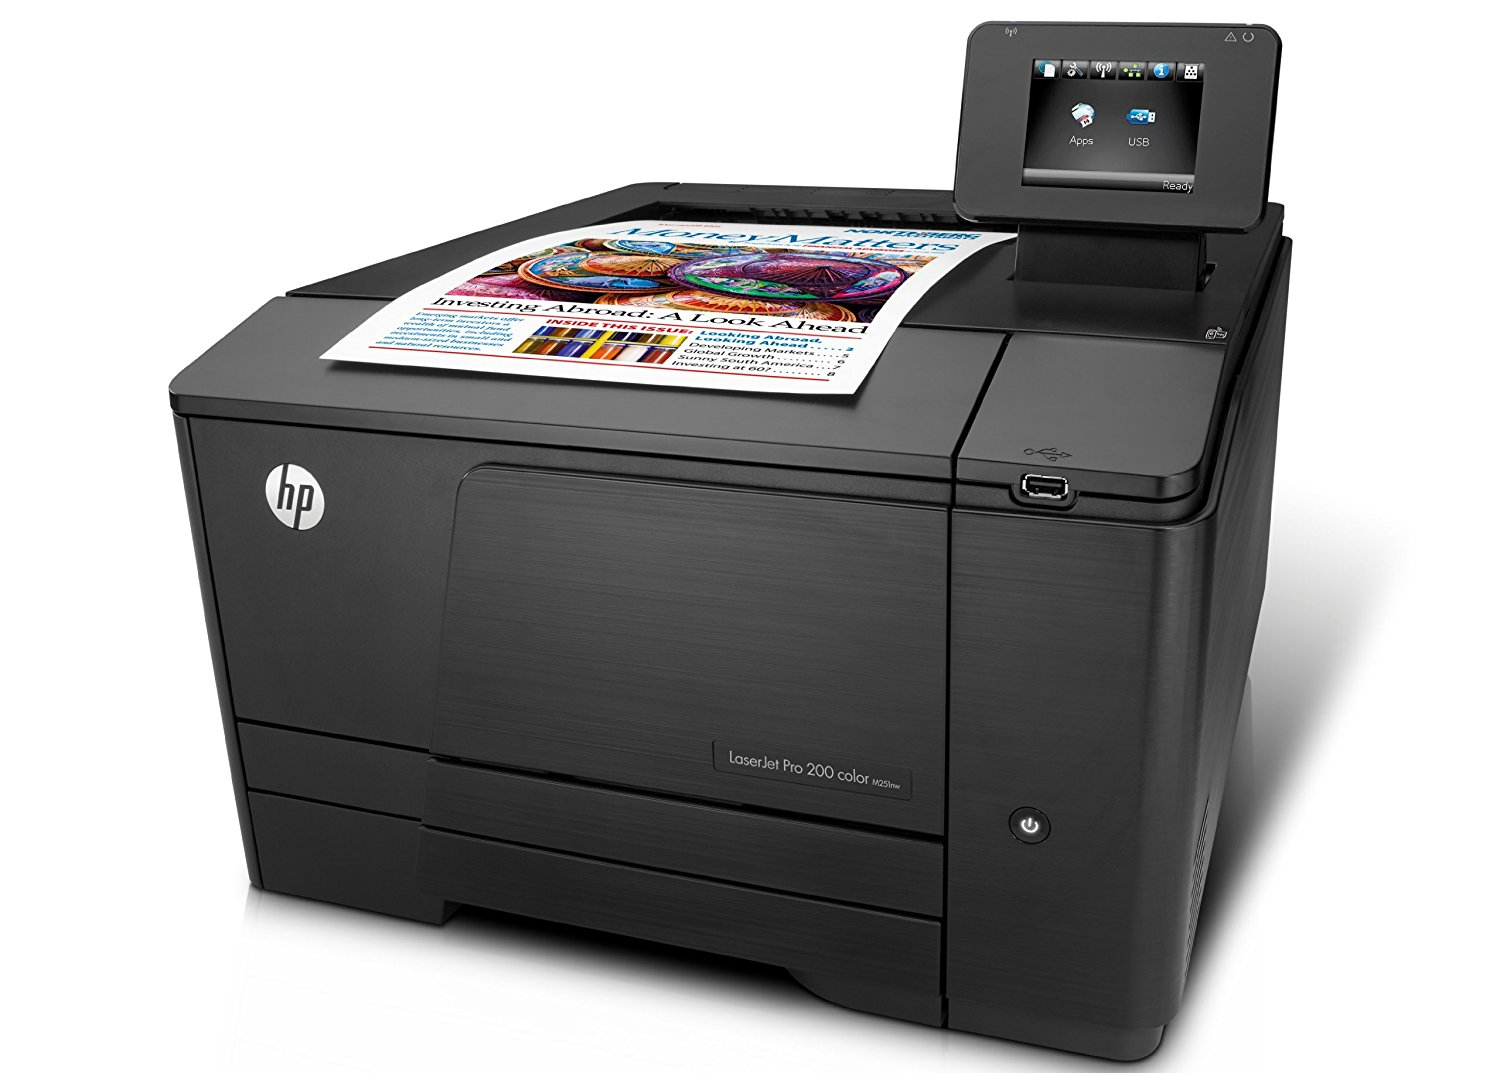 How to Reset Your HP LaserJet Pro 200 Color M251nw